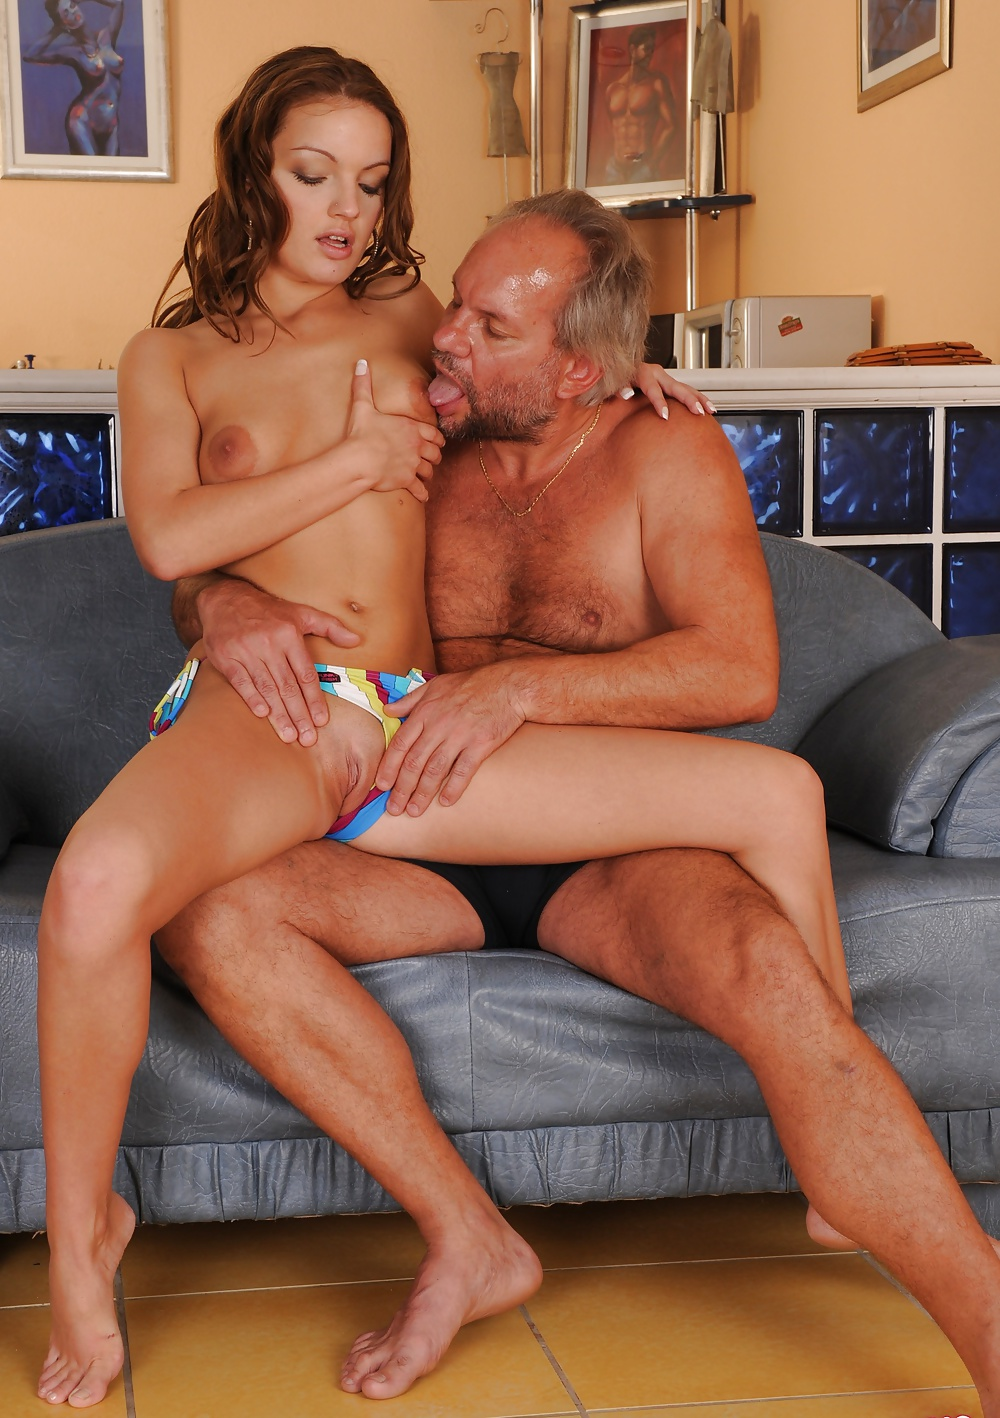 Teen grandpa on girl xxx tubu horny